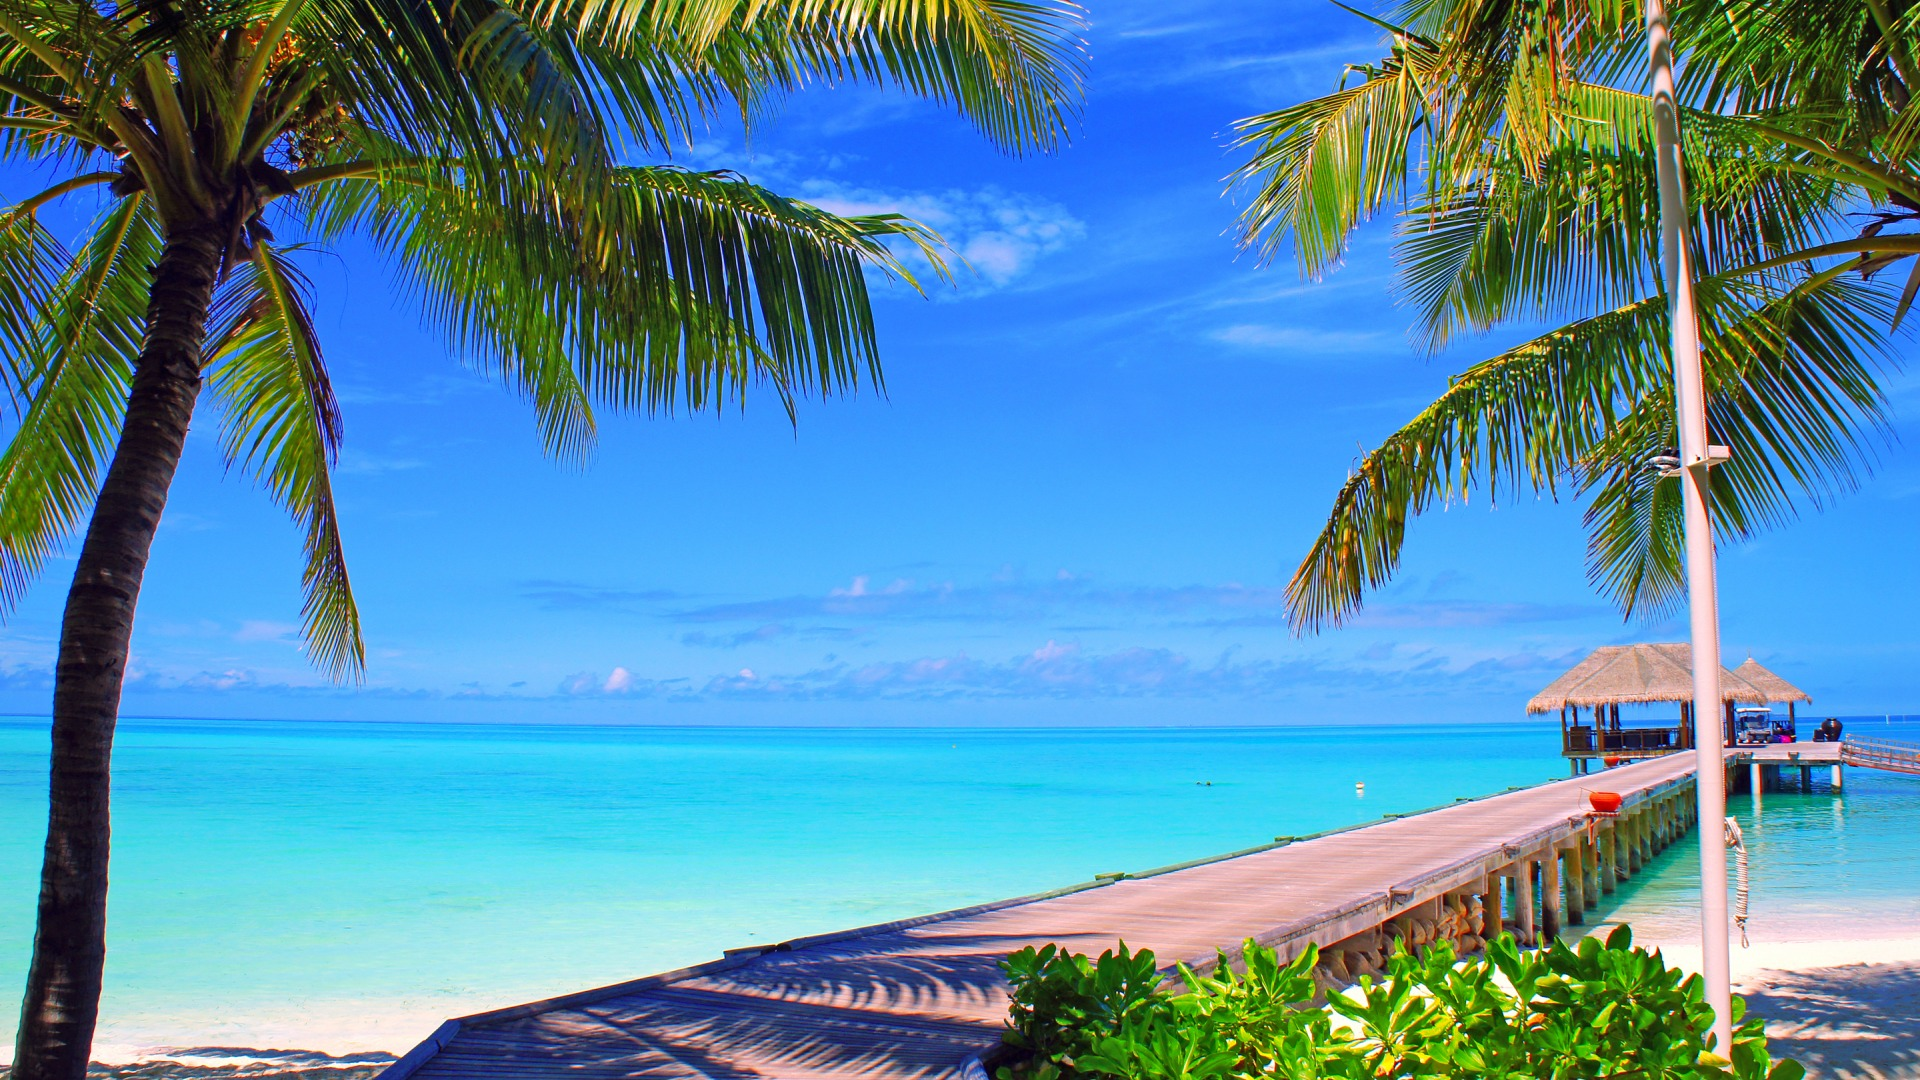 Download-sea-the-sky-clouds-palm-trees-the-ocean-island-horizon-the-Maldives-the-b-wallpaper-wp3404981